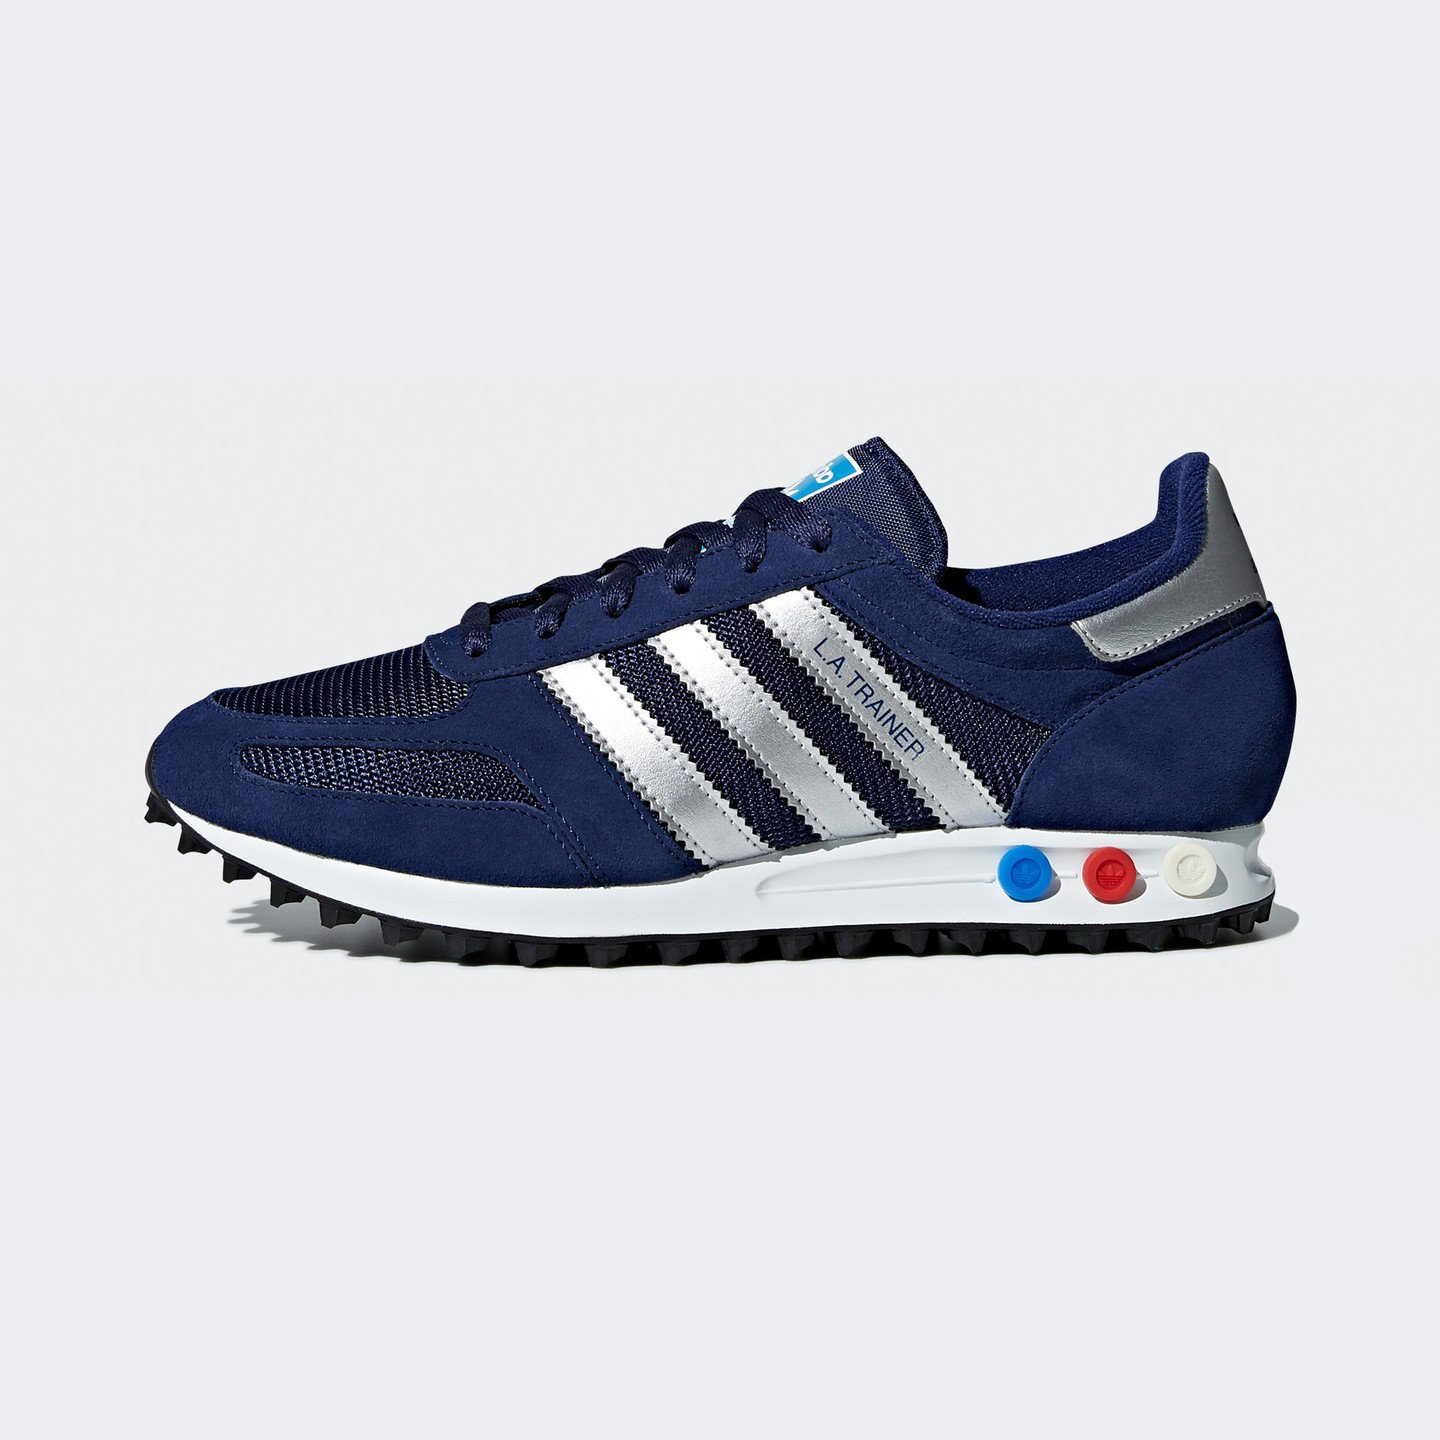 Adidas LA Trainer OG Dark Blue / Metallic Silver CQ2278